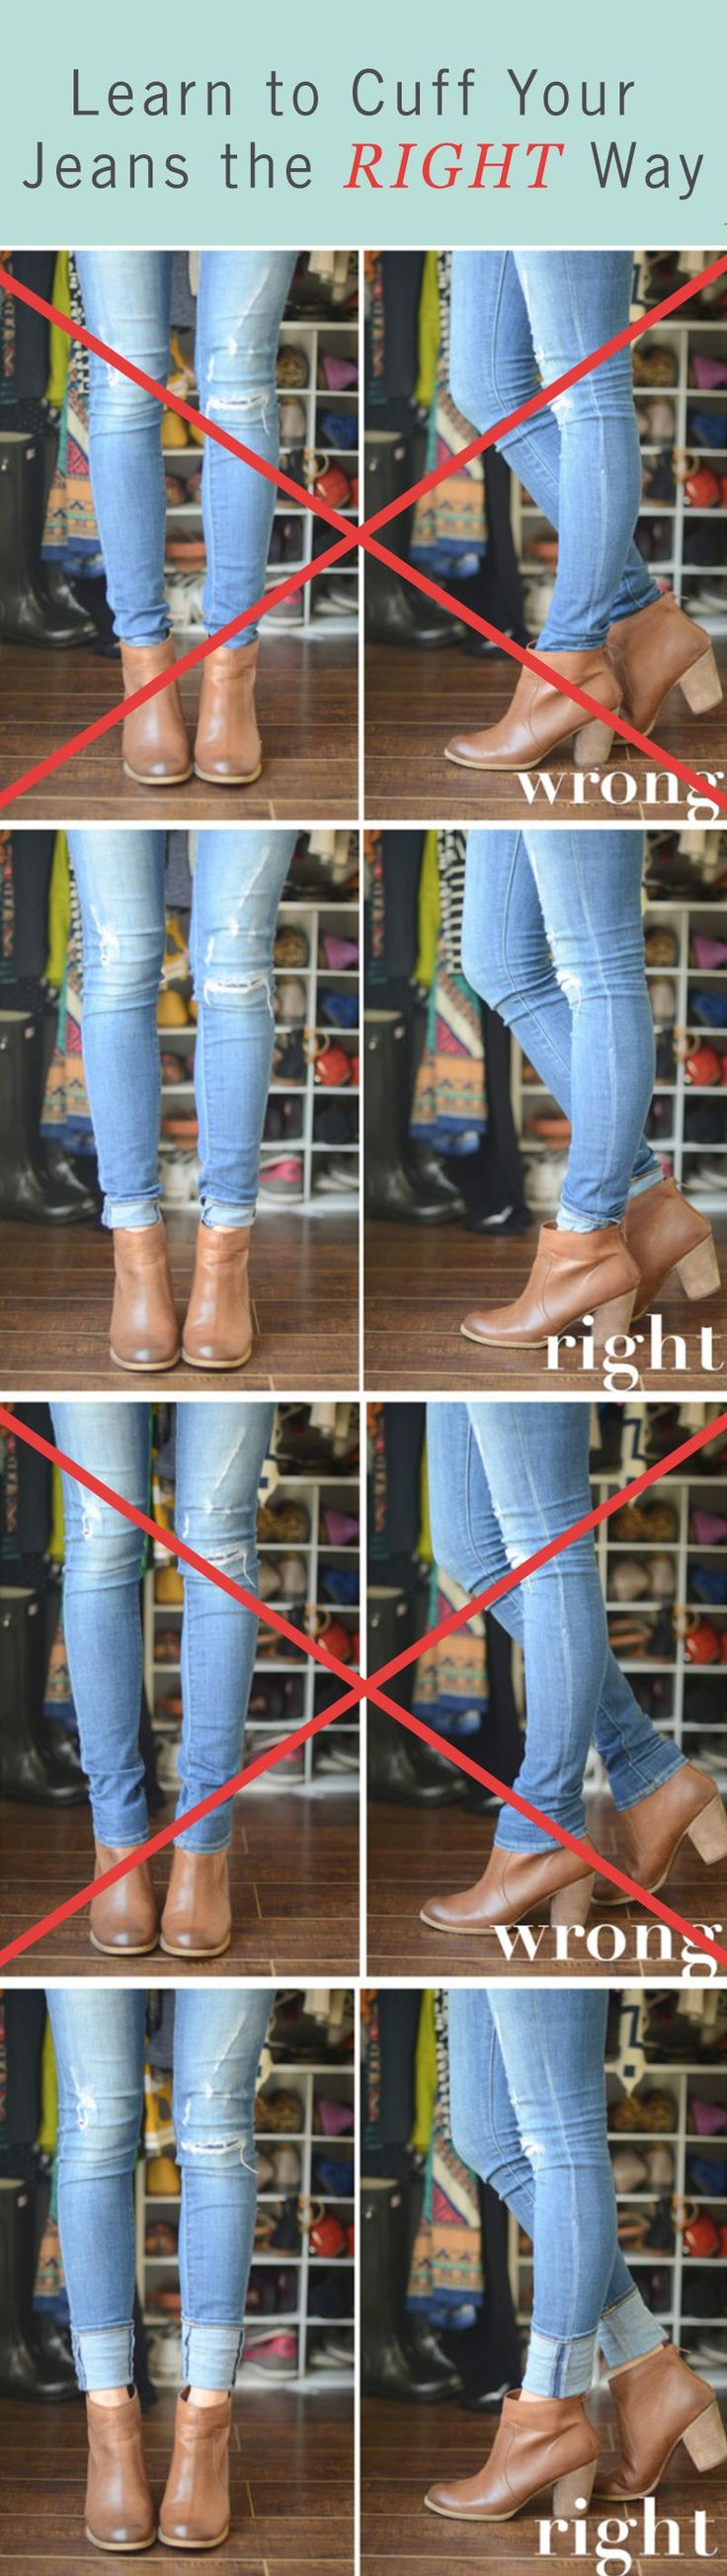 How to wear jeans and ankle boots / booties